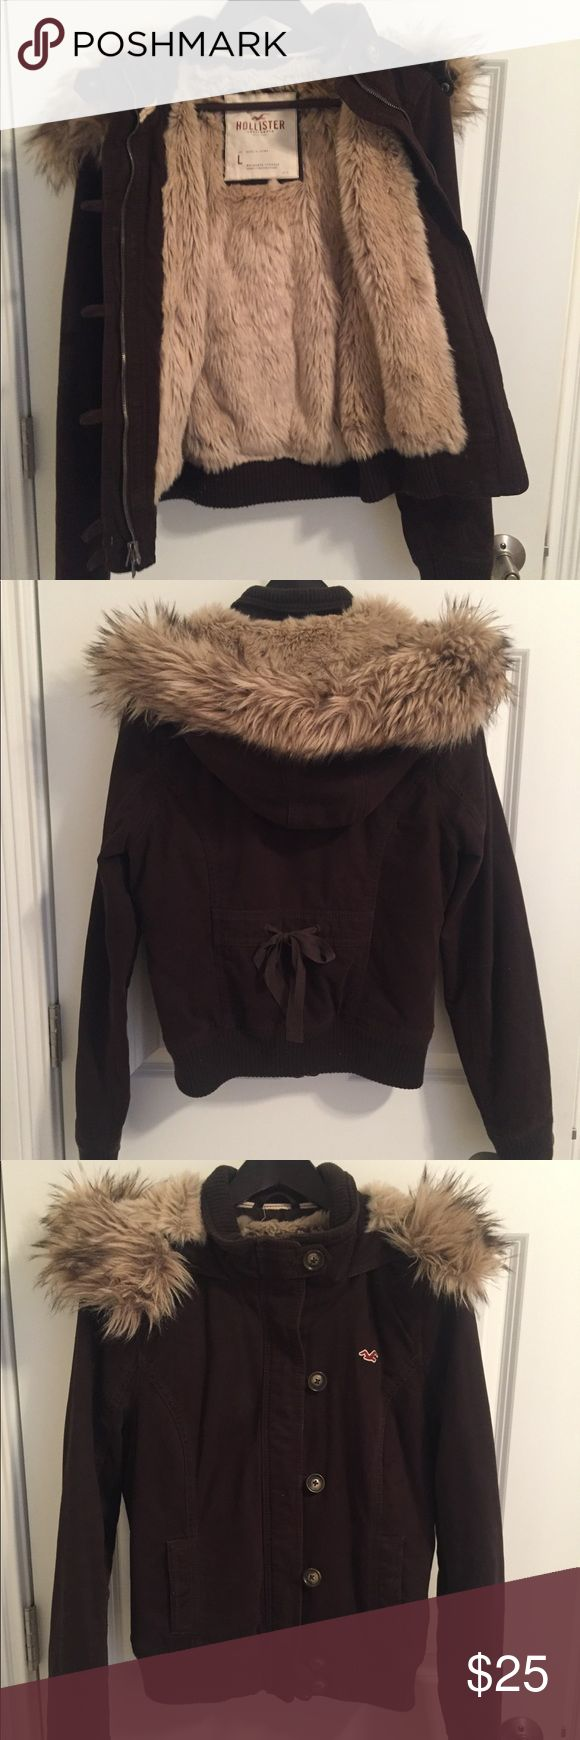 Soft Fur Brown Bomber Coat Jacket Large Hollister This brown bomber jacket from Hollister is in like new condition. The fur is SUPER soft and is on the interior of the coat, as well as inside the hood. The fur rim on the hood is removable. Hollister Jackets & Coats